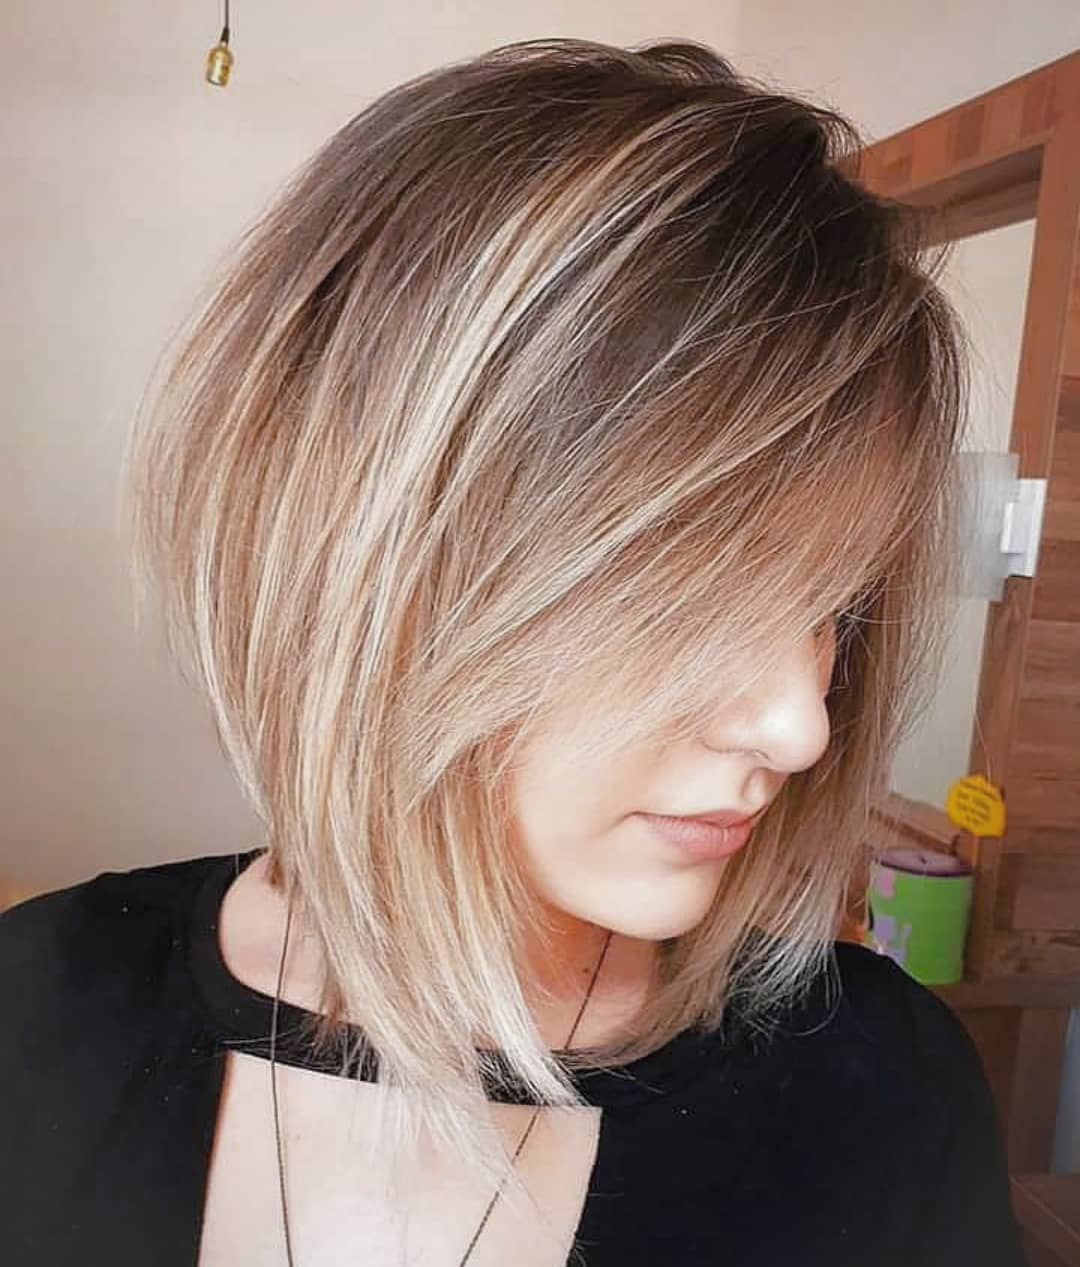 10 Trendy Choppy Lob Haircuts For Women Best Medium Hair Styles 2019